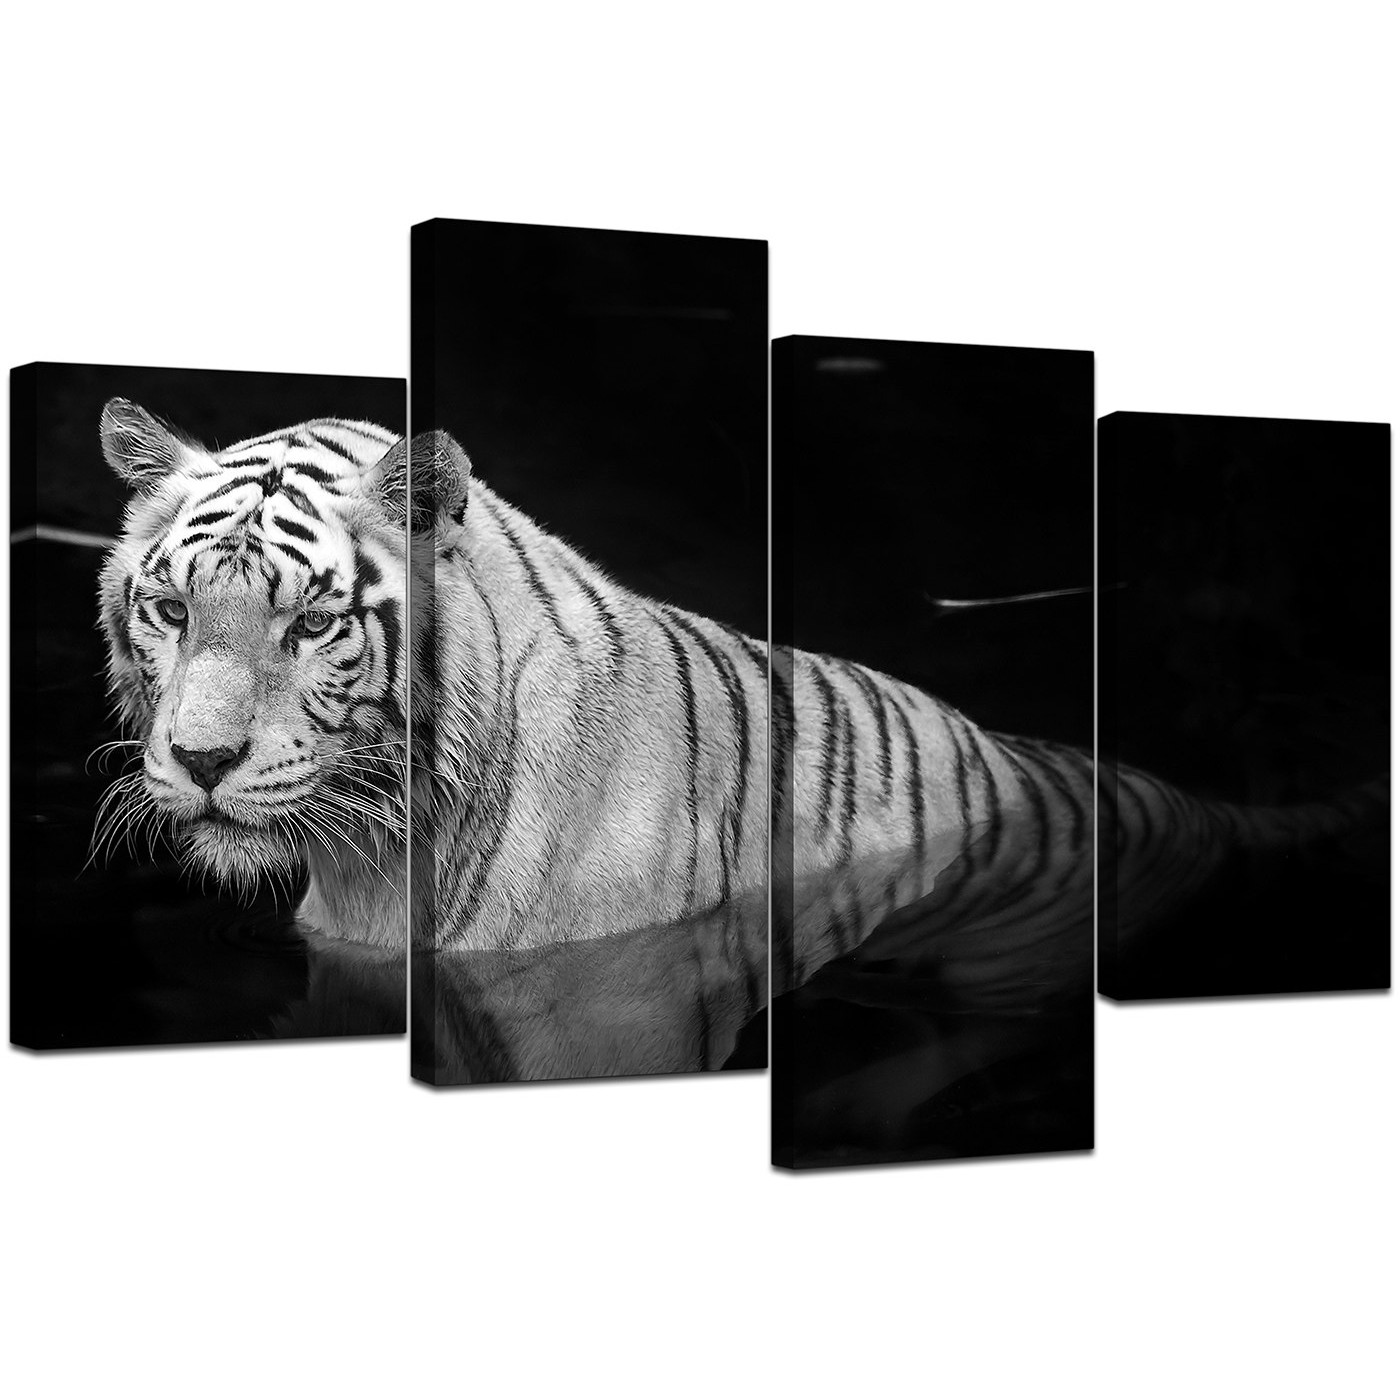 Black and White Tiger Canvas Wall Art For Bedroom : cheap 4 piece set black white tiger canvas art 40204 from www.wallfillers.co.uk size 1400 x 1400 jpeg 247kB